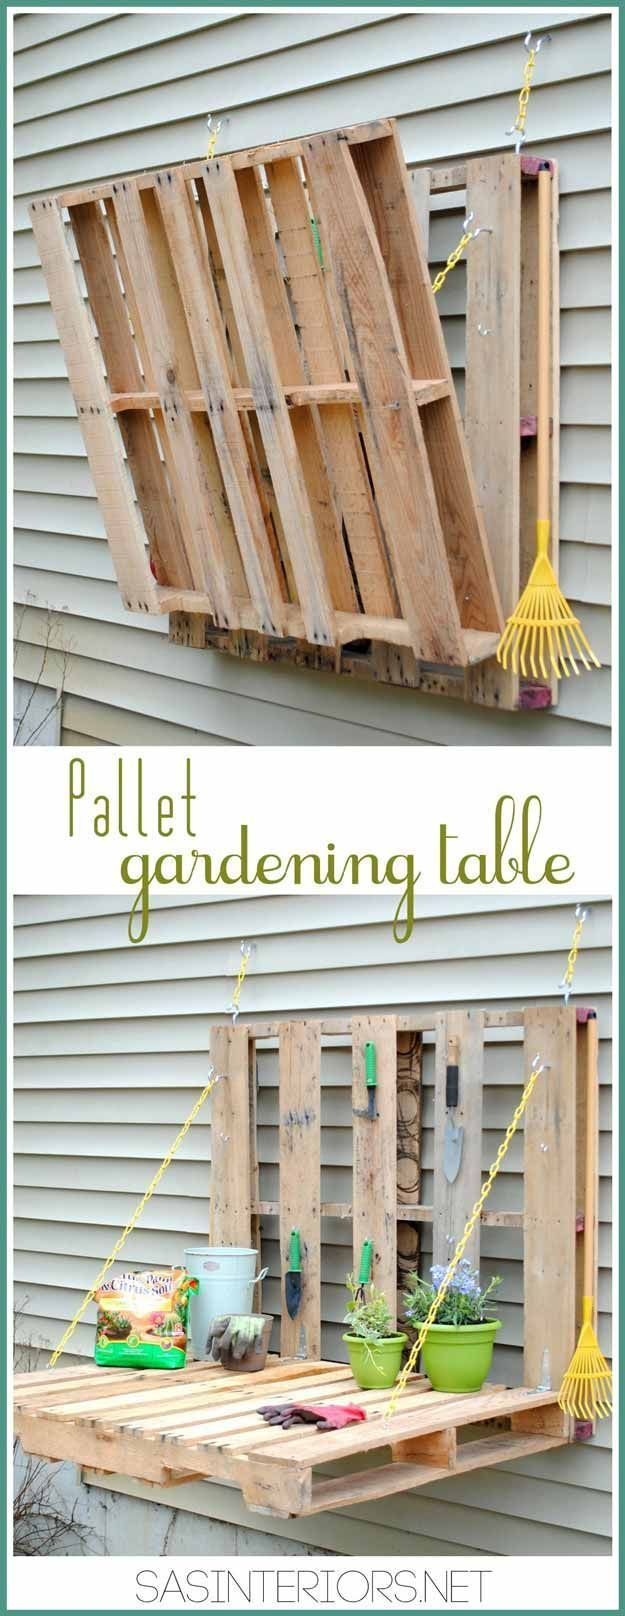 outdoor pallet projects for diy furniture | pallet all'aperto ... - Mobili Da Giardino Allaperto Idee